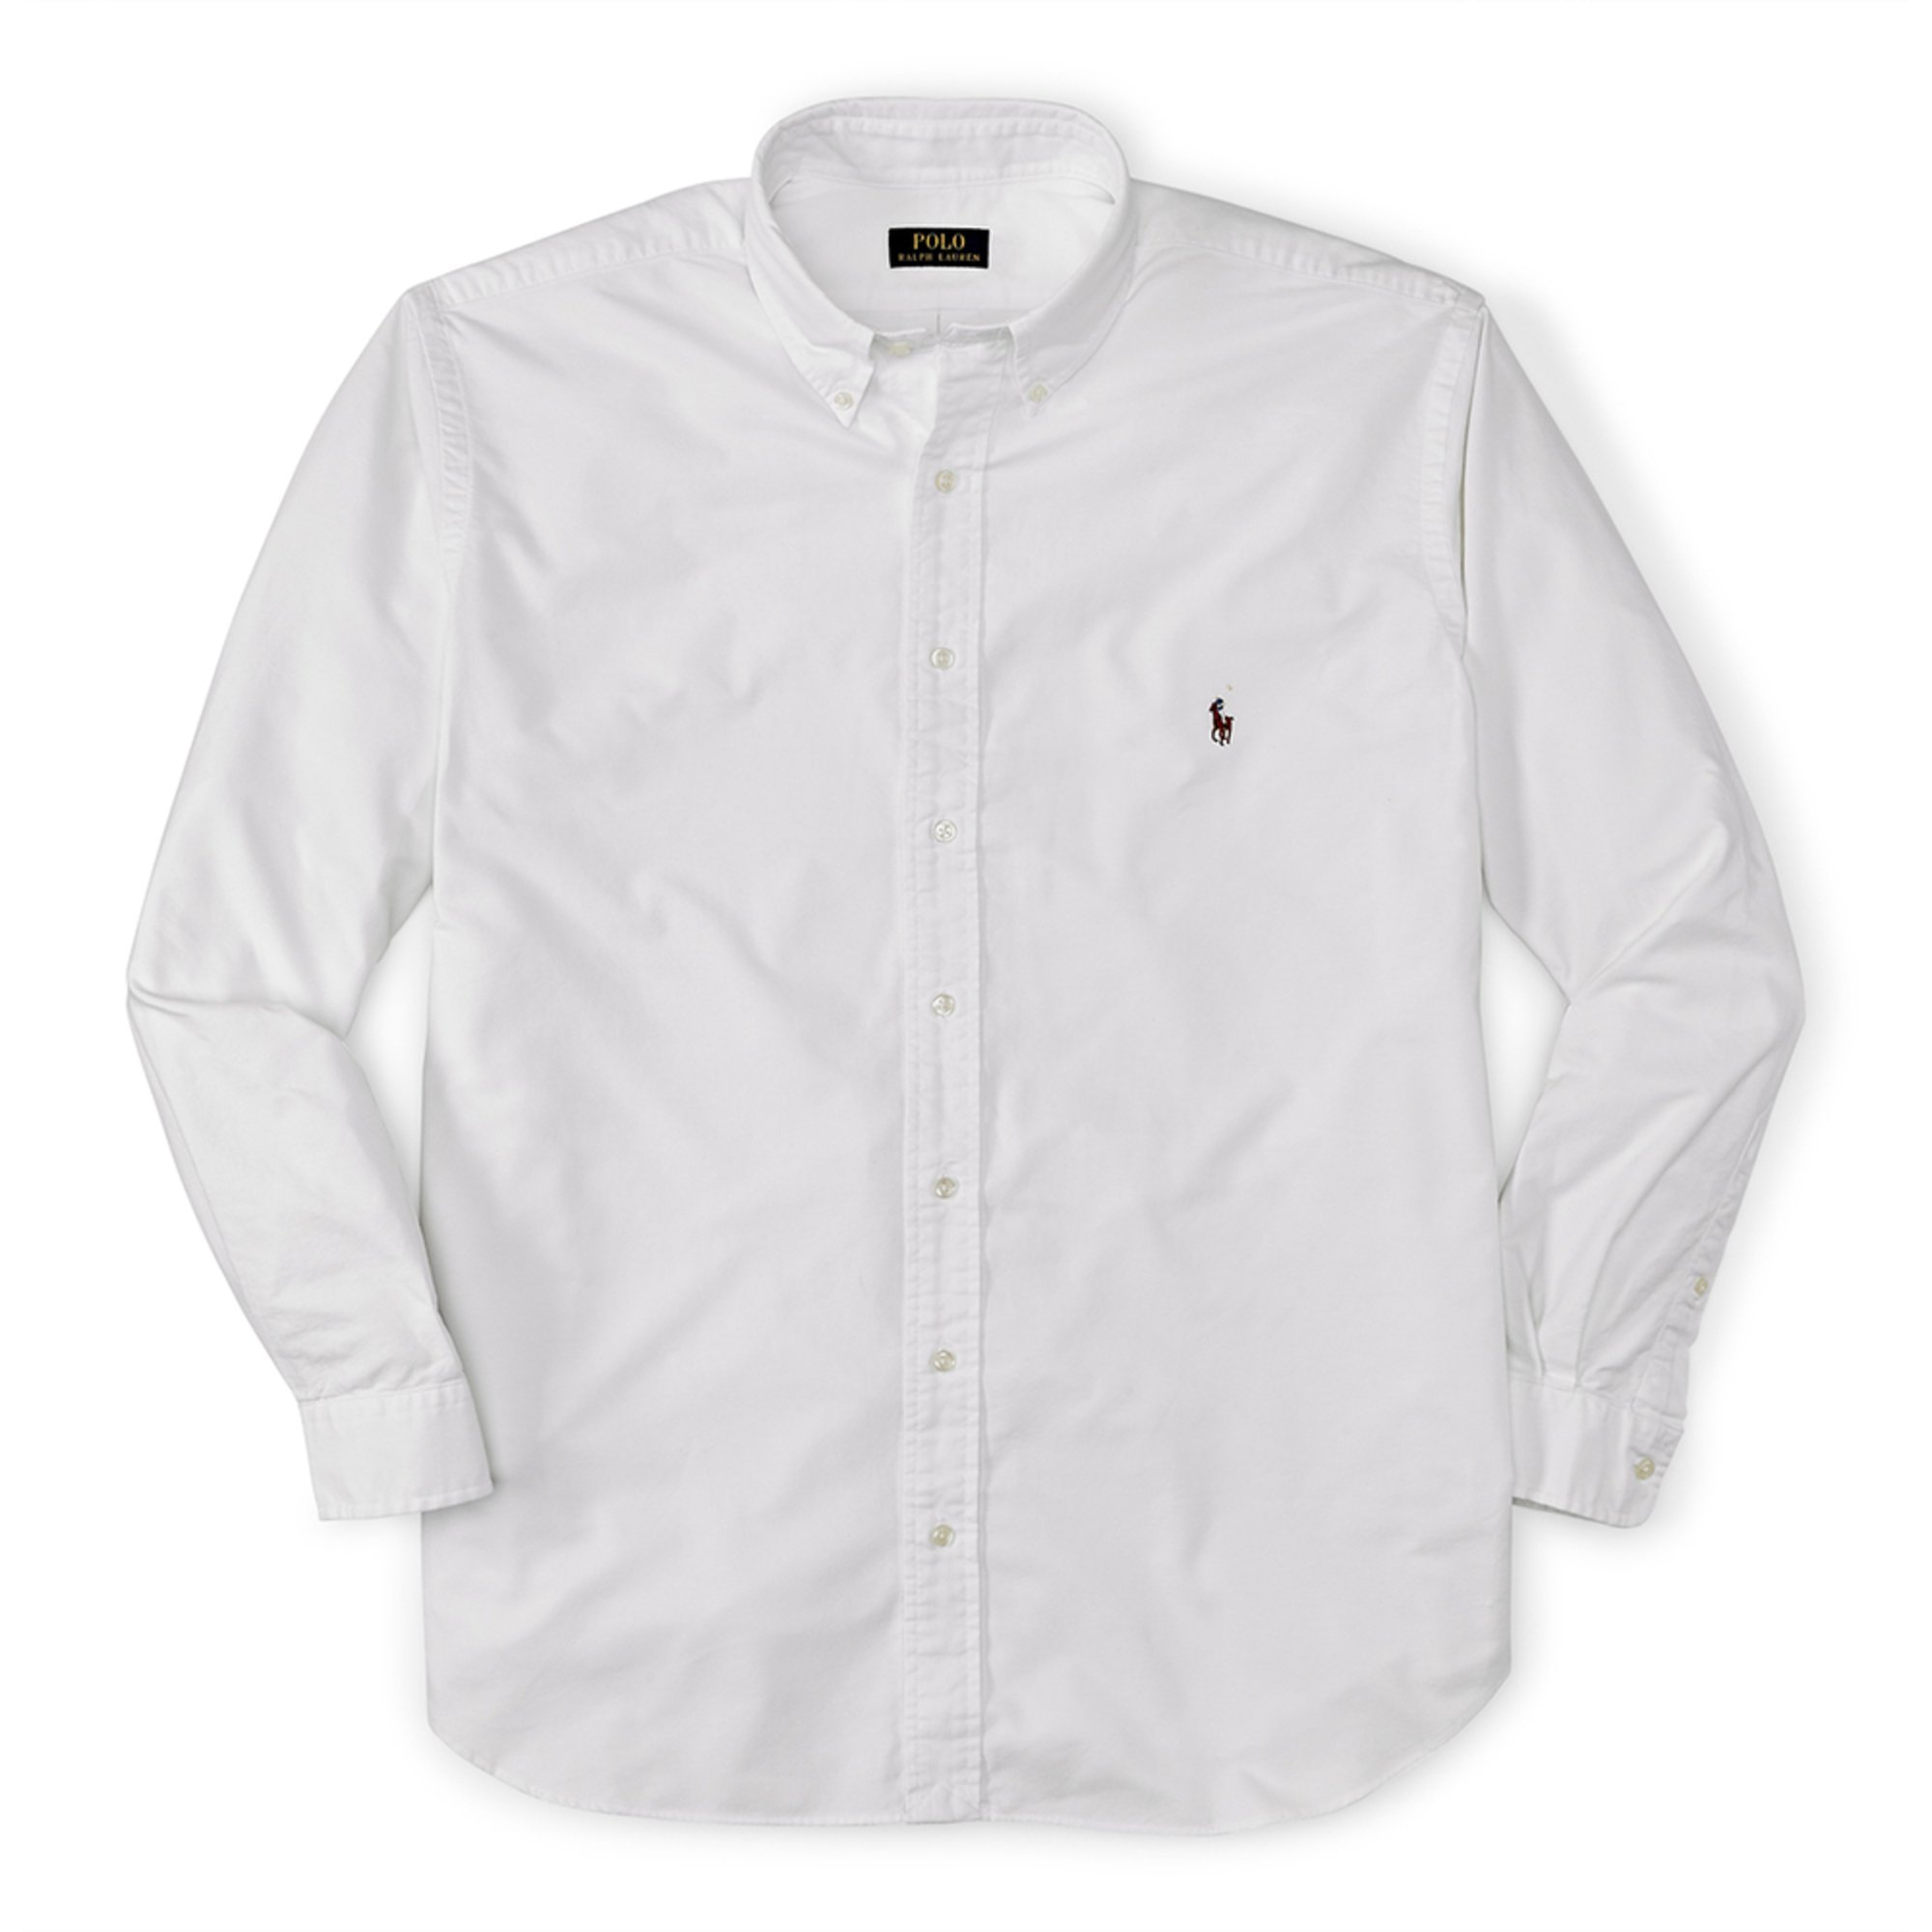 Polo ralph lauren big tall solid cotton oxford sport for Big and tall polo shirts on sale